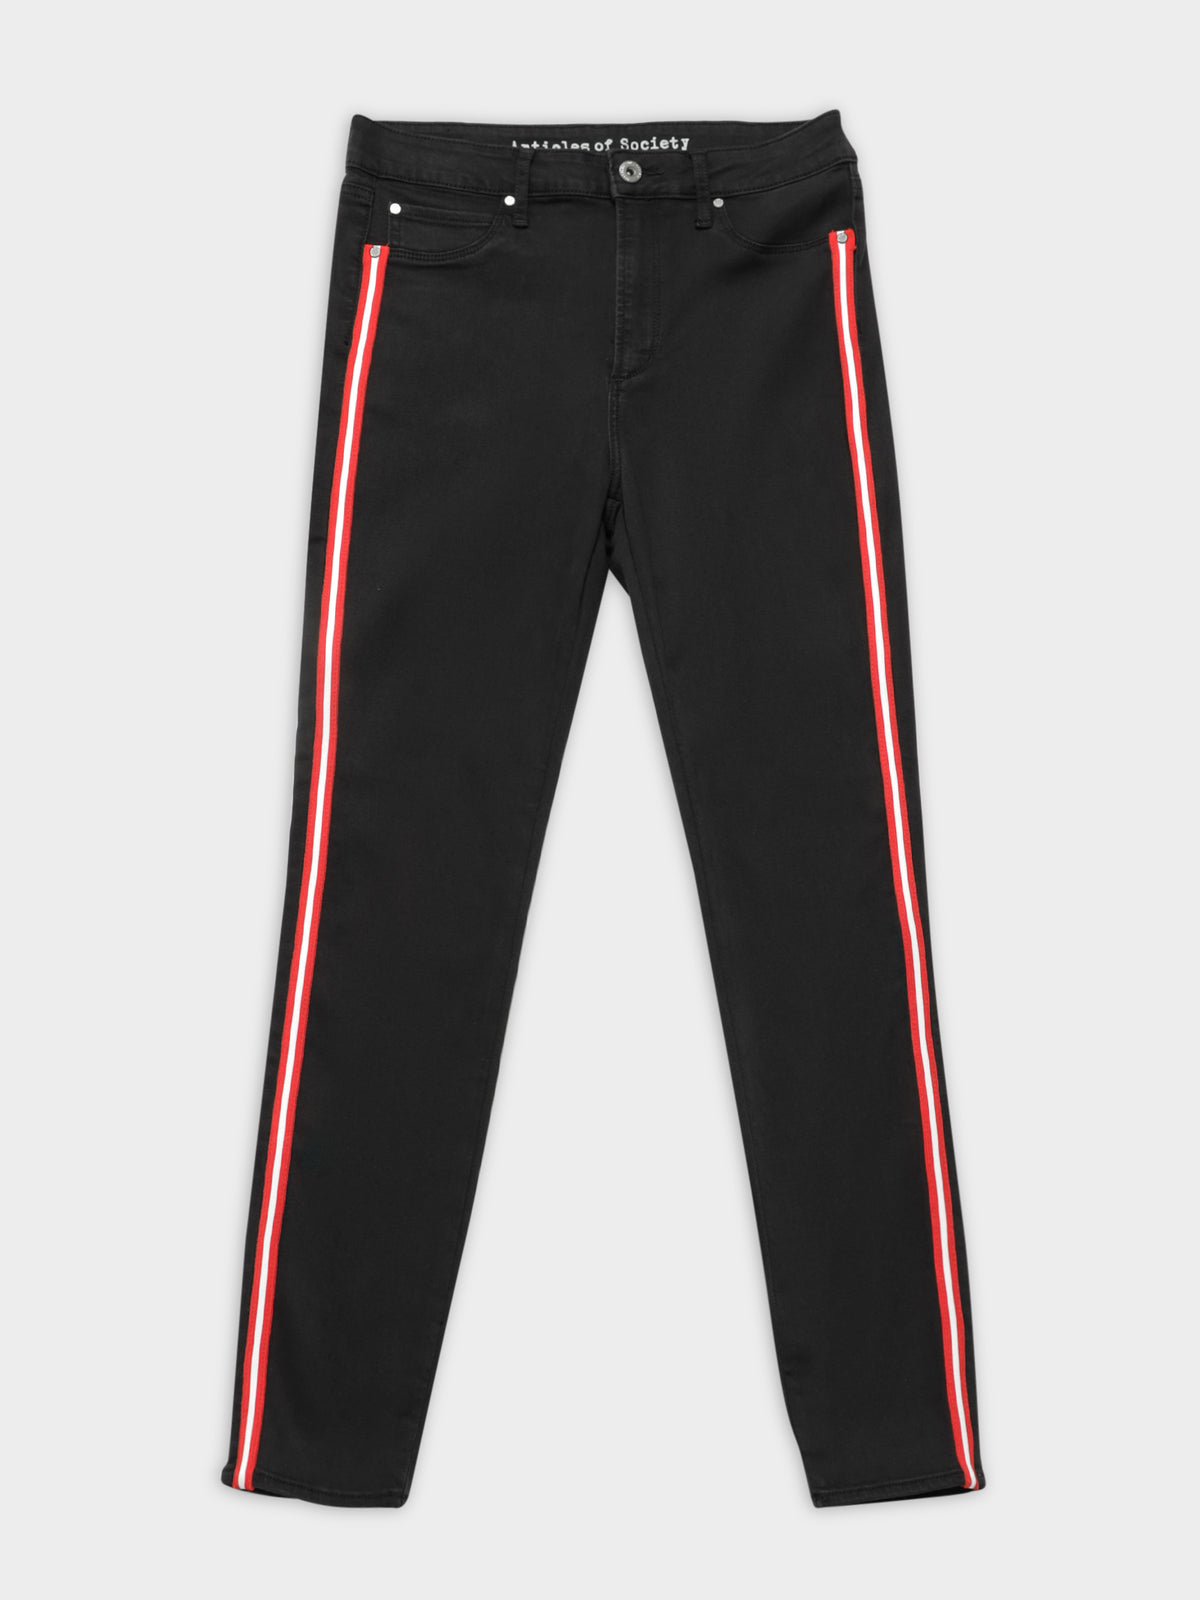 High Cisco Super Skinny Jeans in Black & Red